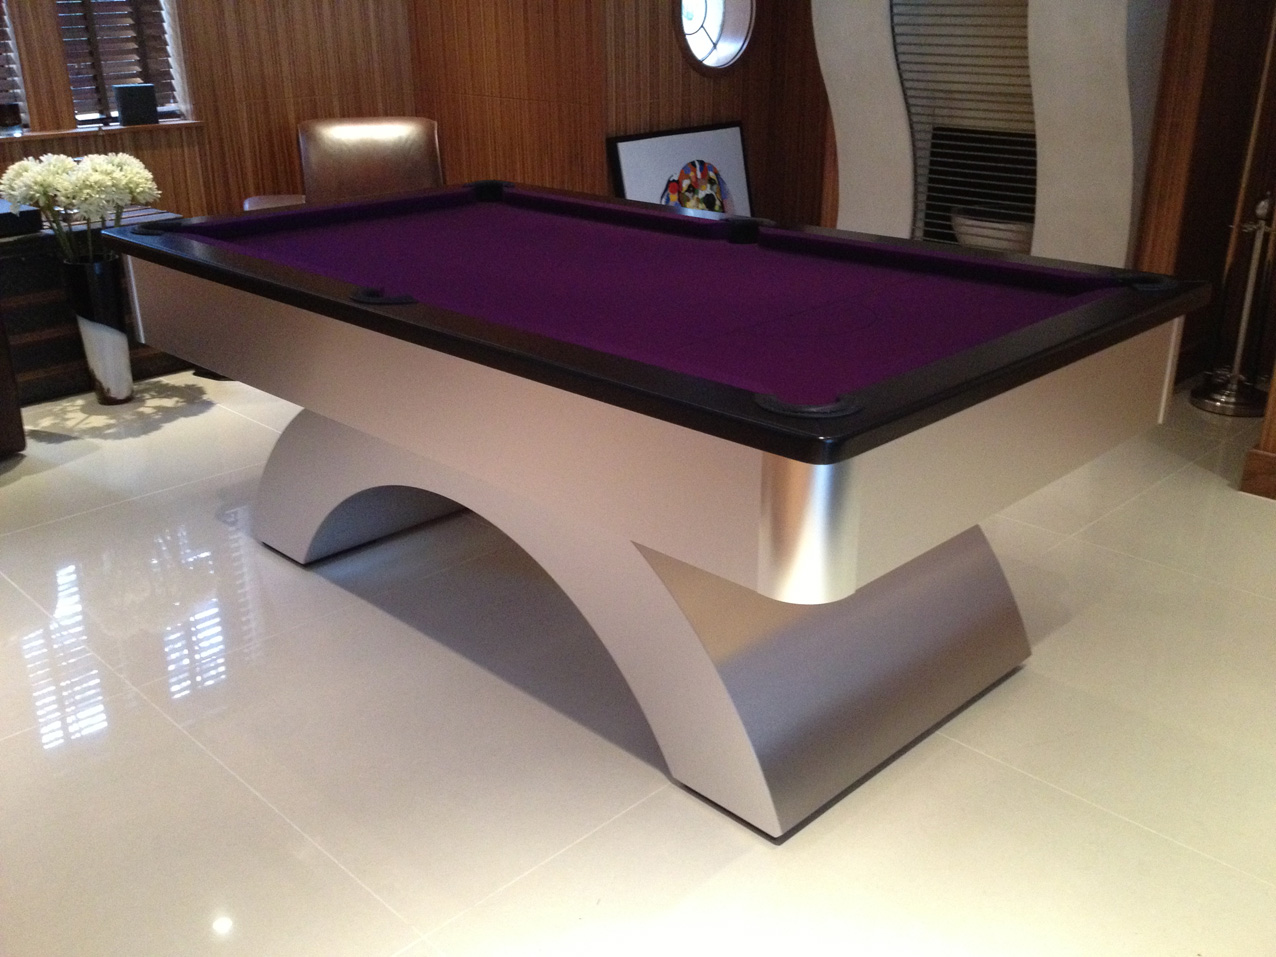 Black Cushion Rail With Purple Cloth Arched UK Pool Table